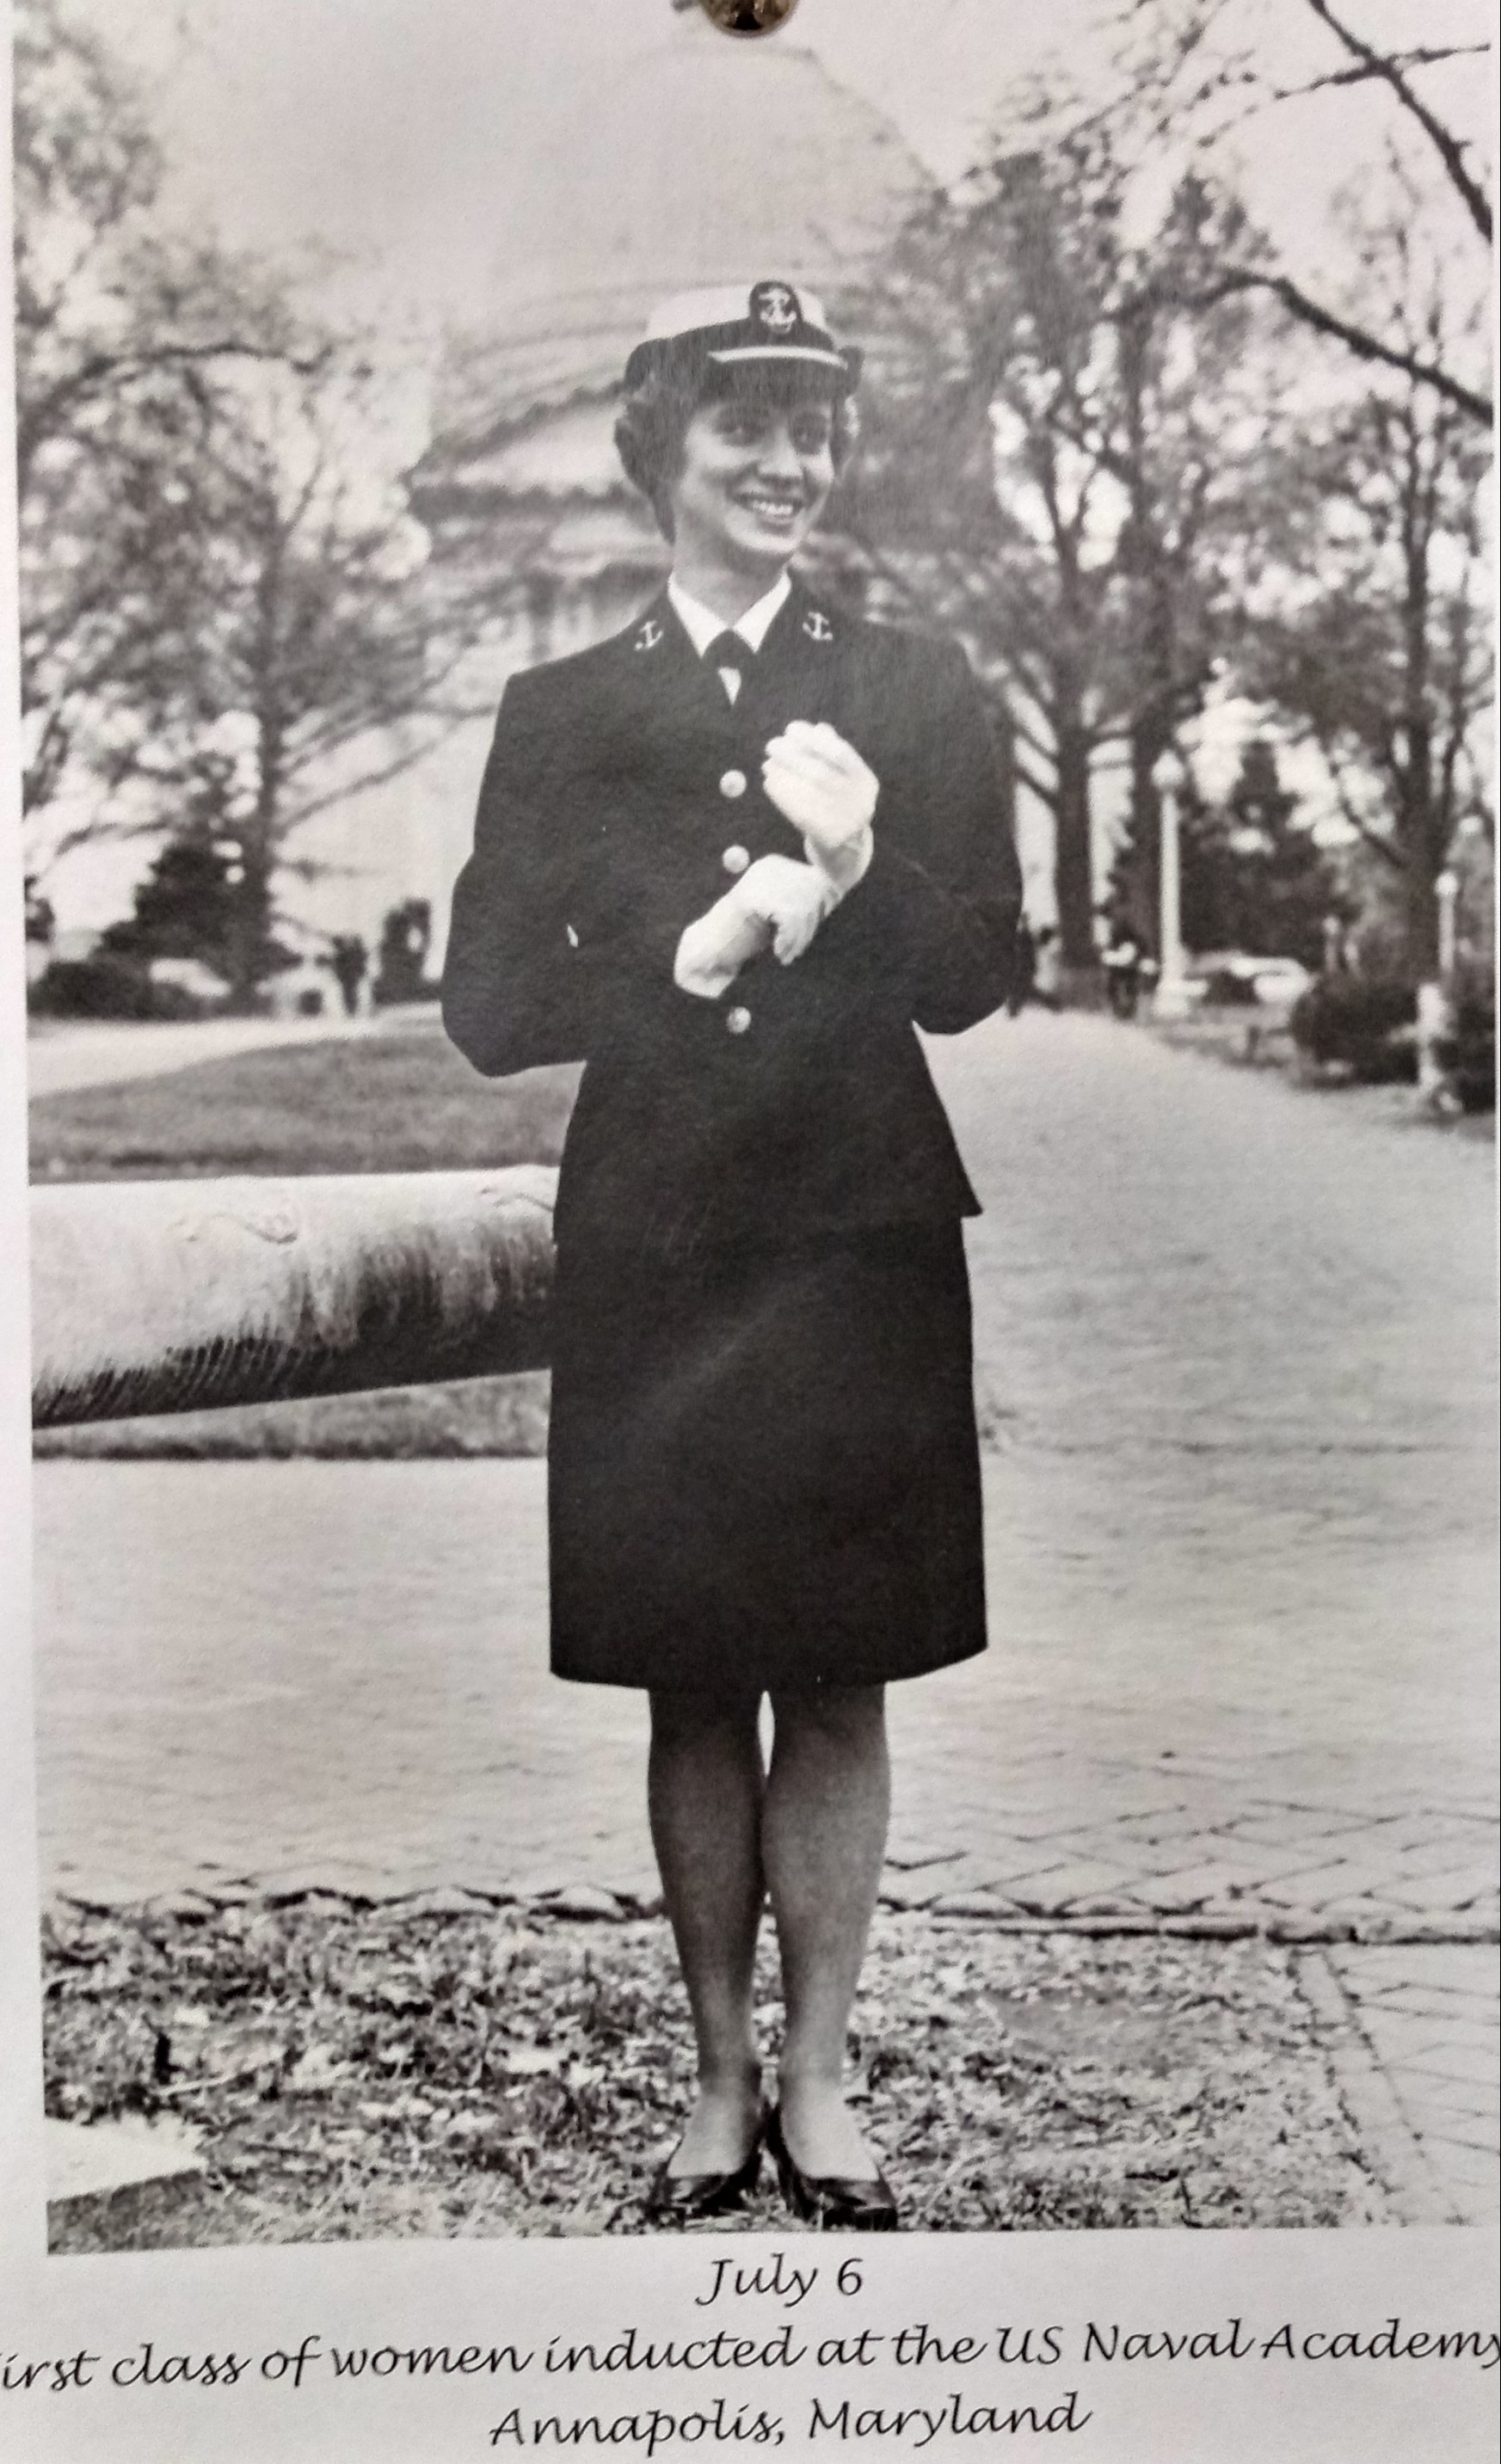 Photograph of a female Naval Academcy inductee in her uniform.